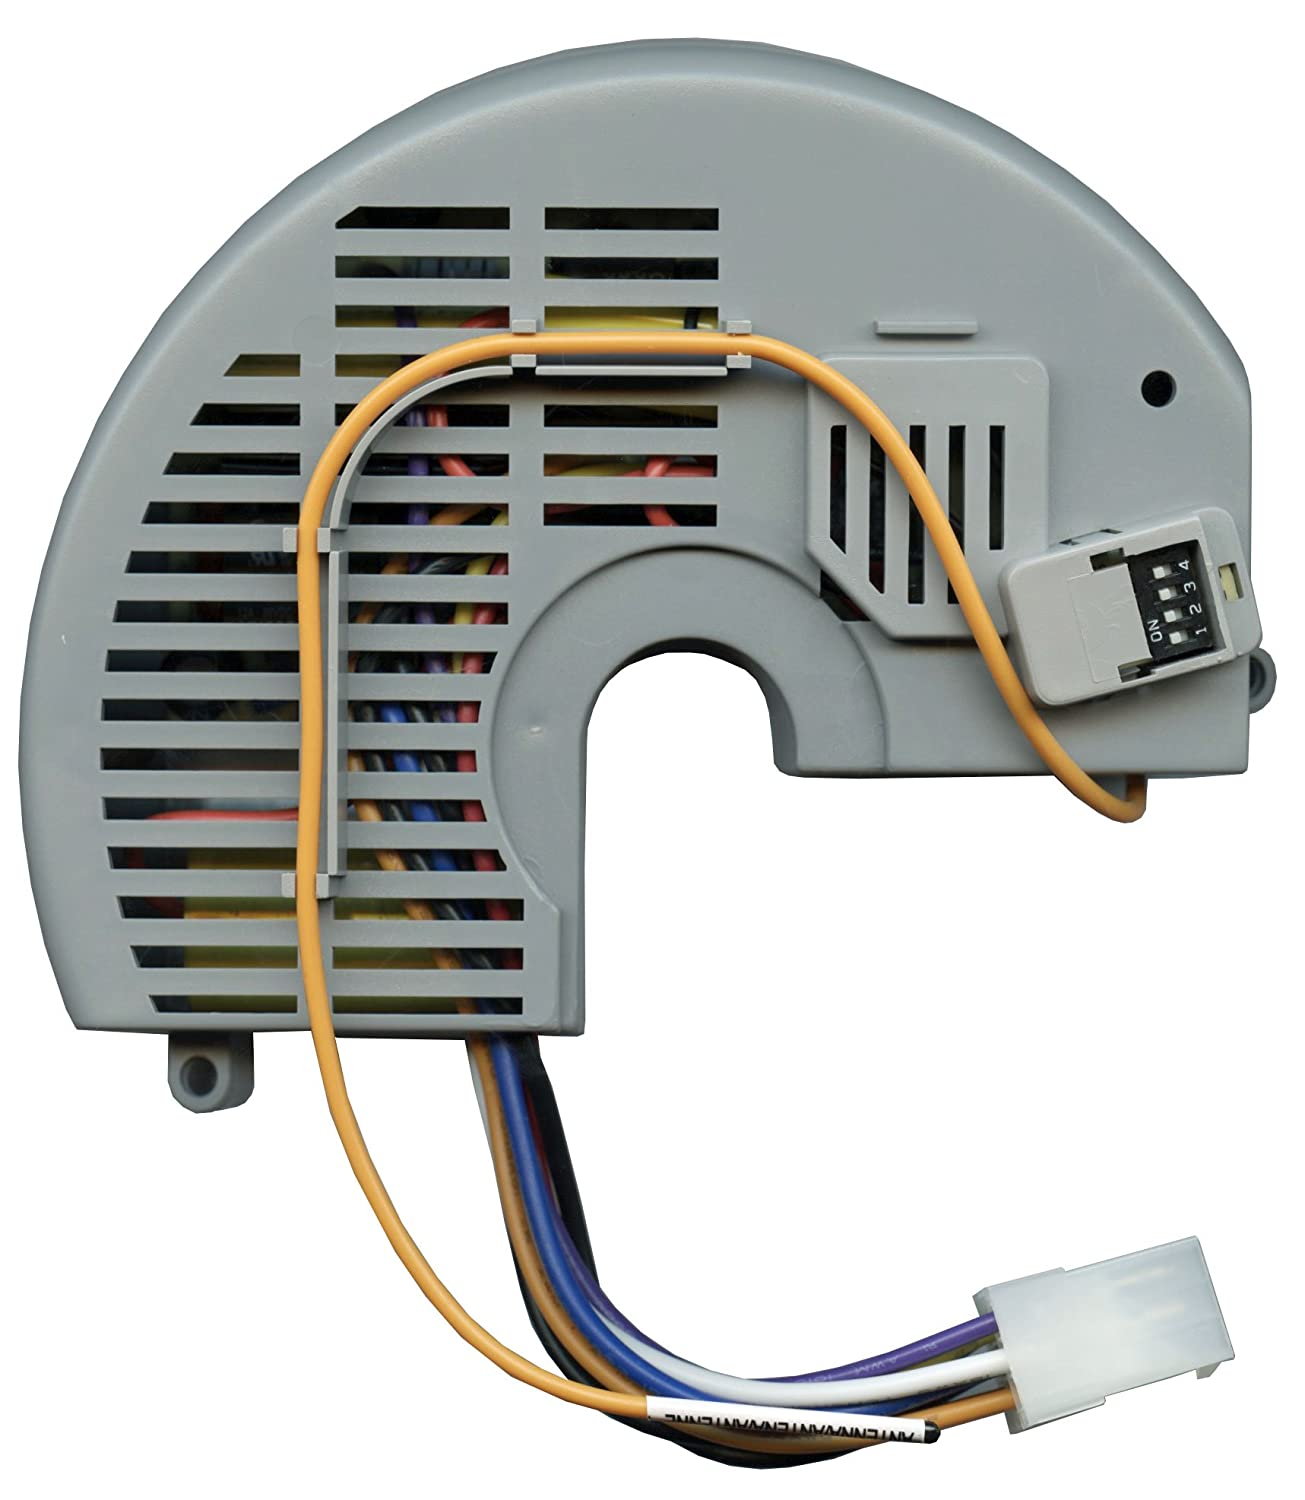 Anderic Replacement for Hampton Bay FAN10R Ceiling fan Receiver (FAN-10R, used with Hampton Bay FAN9T, FAN-9T Thermostatic Remote) - Controls Fan Reverse, High, Medium, Low, Off and Lights Dan' s Electronics Etc. Inc.